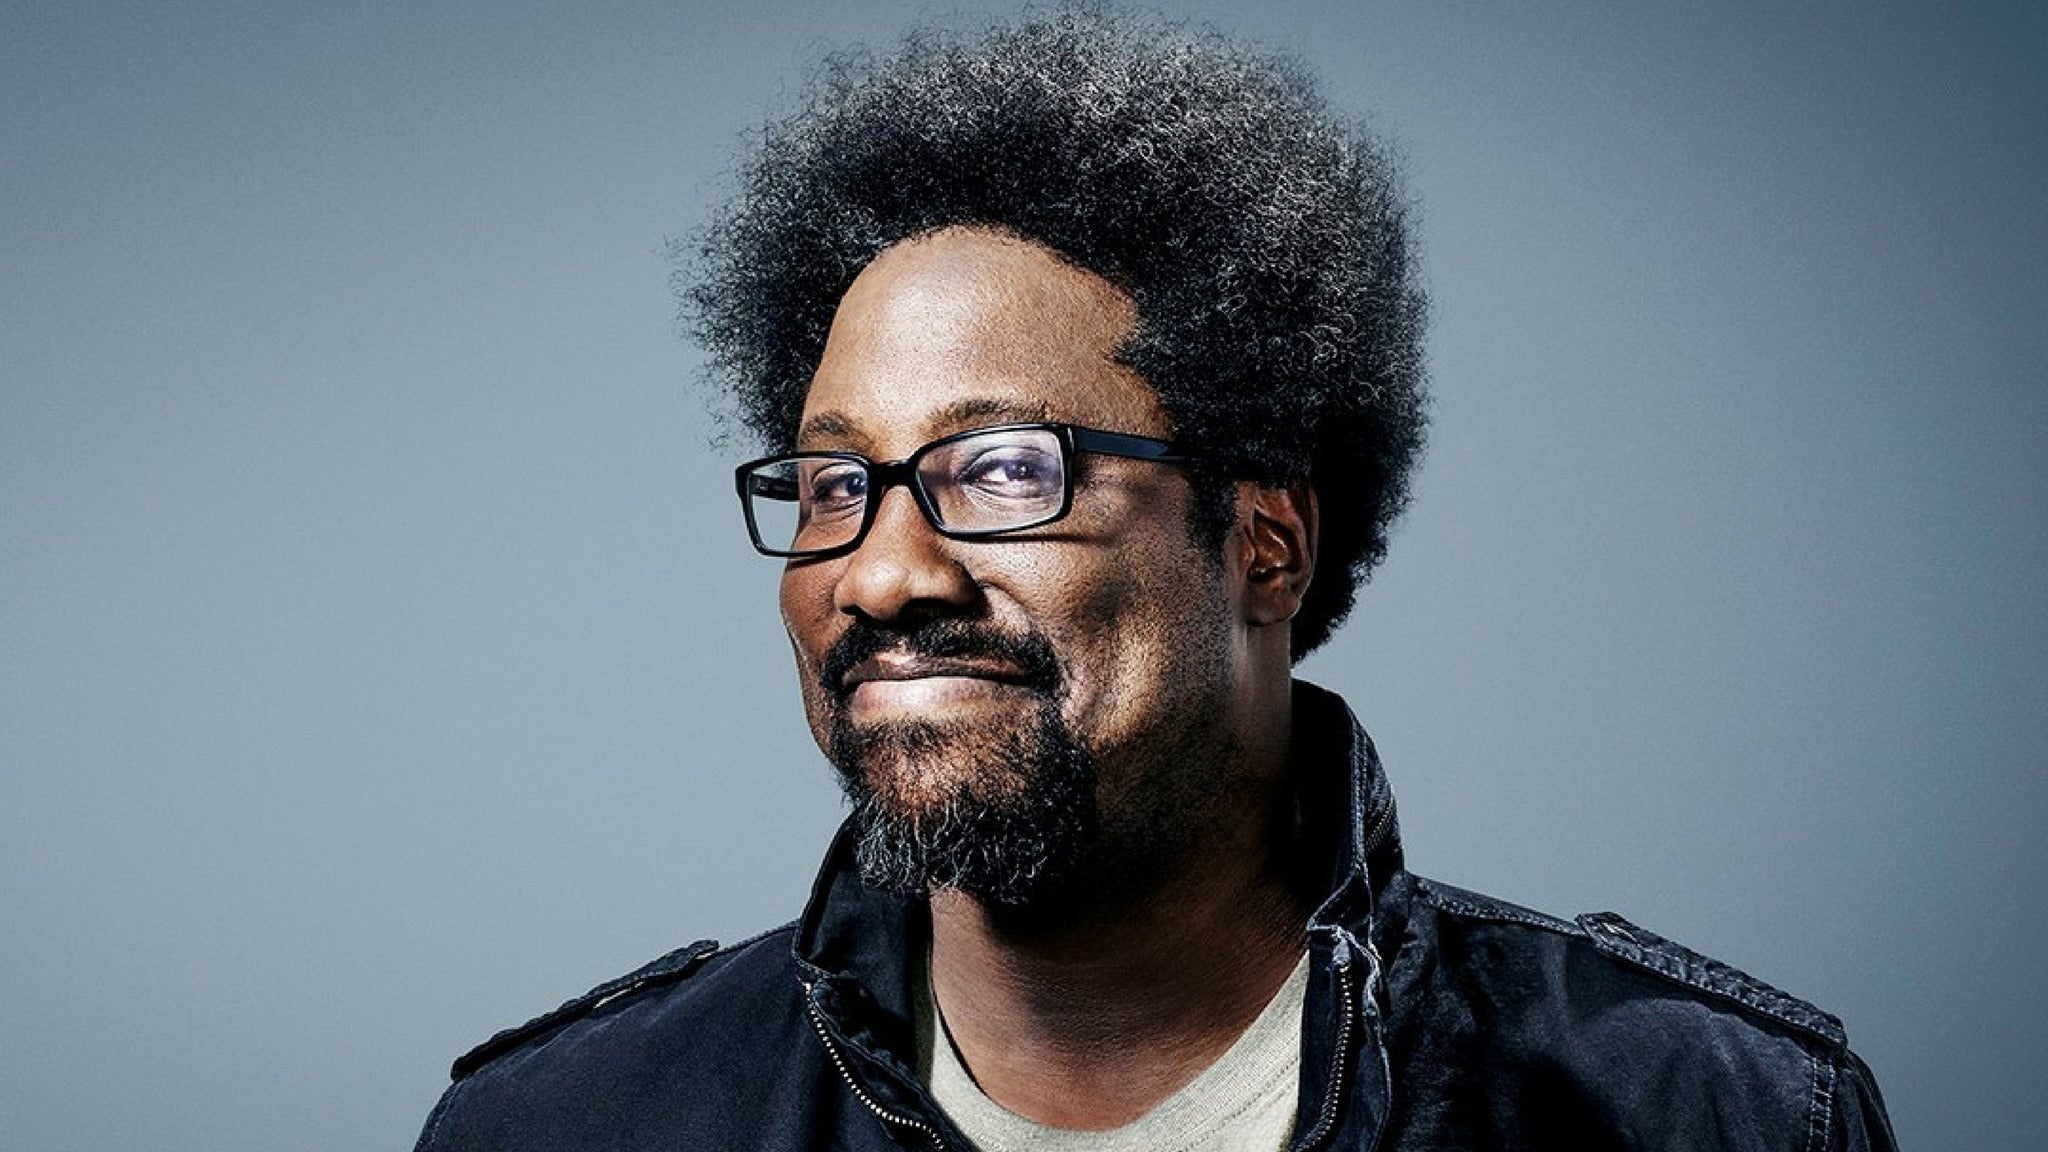 W. Kamau Bell at Punch Line Comedy Club - San Francisco - San Francisco, CA 94111